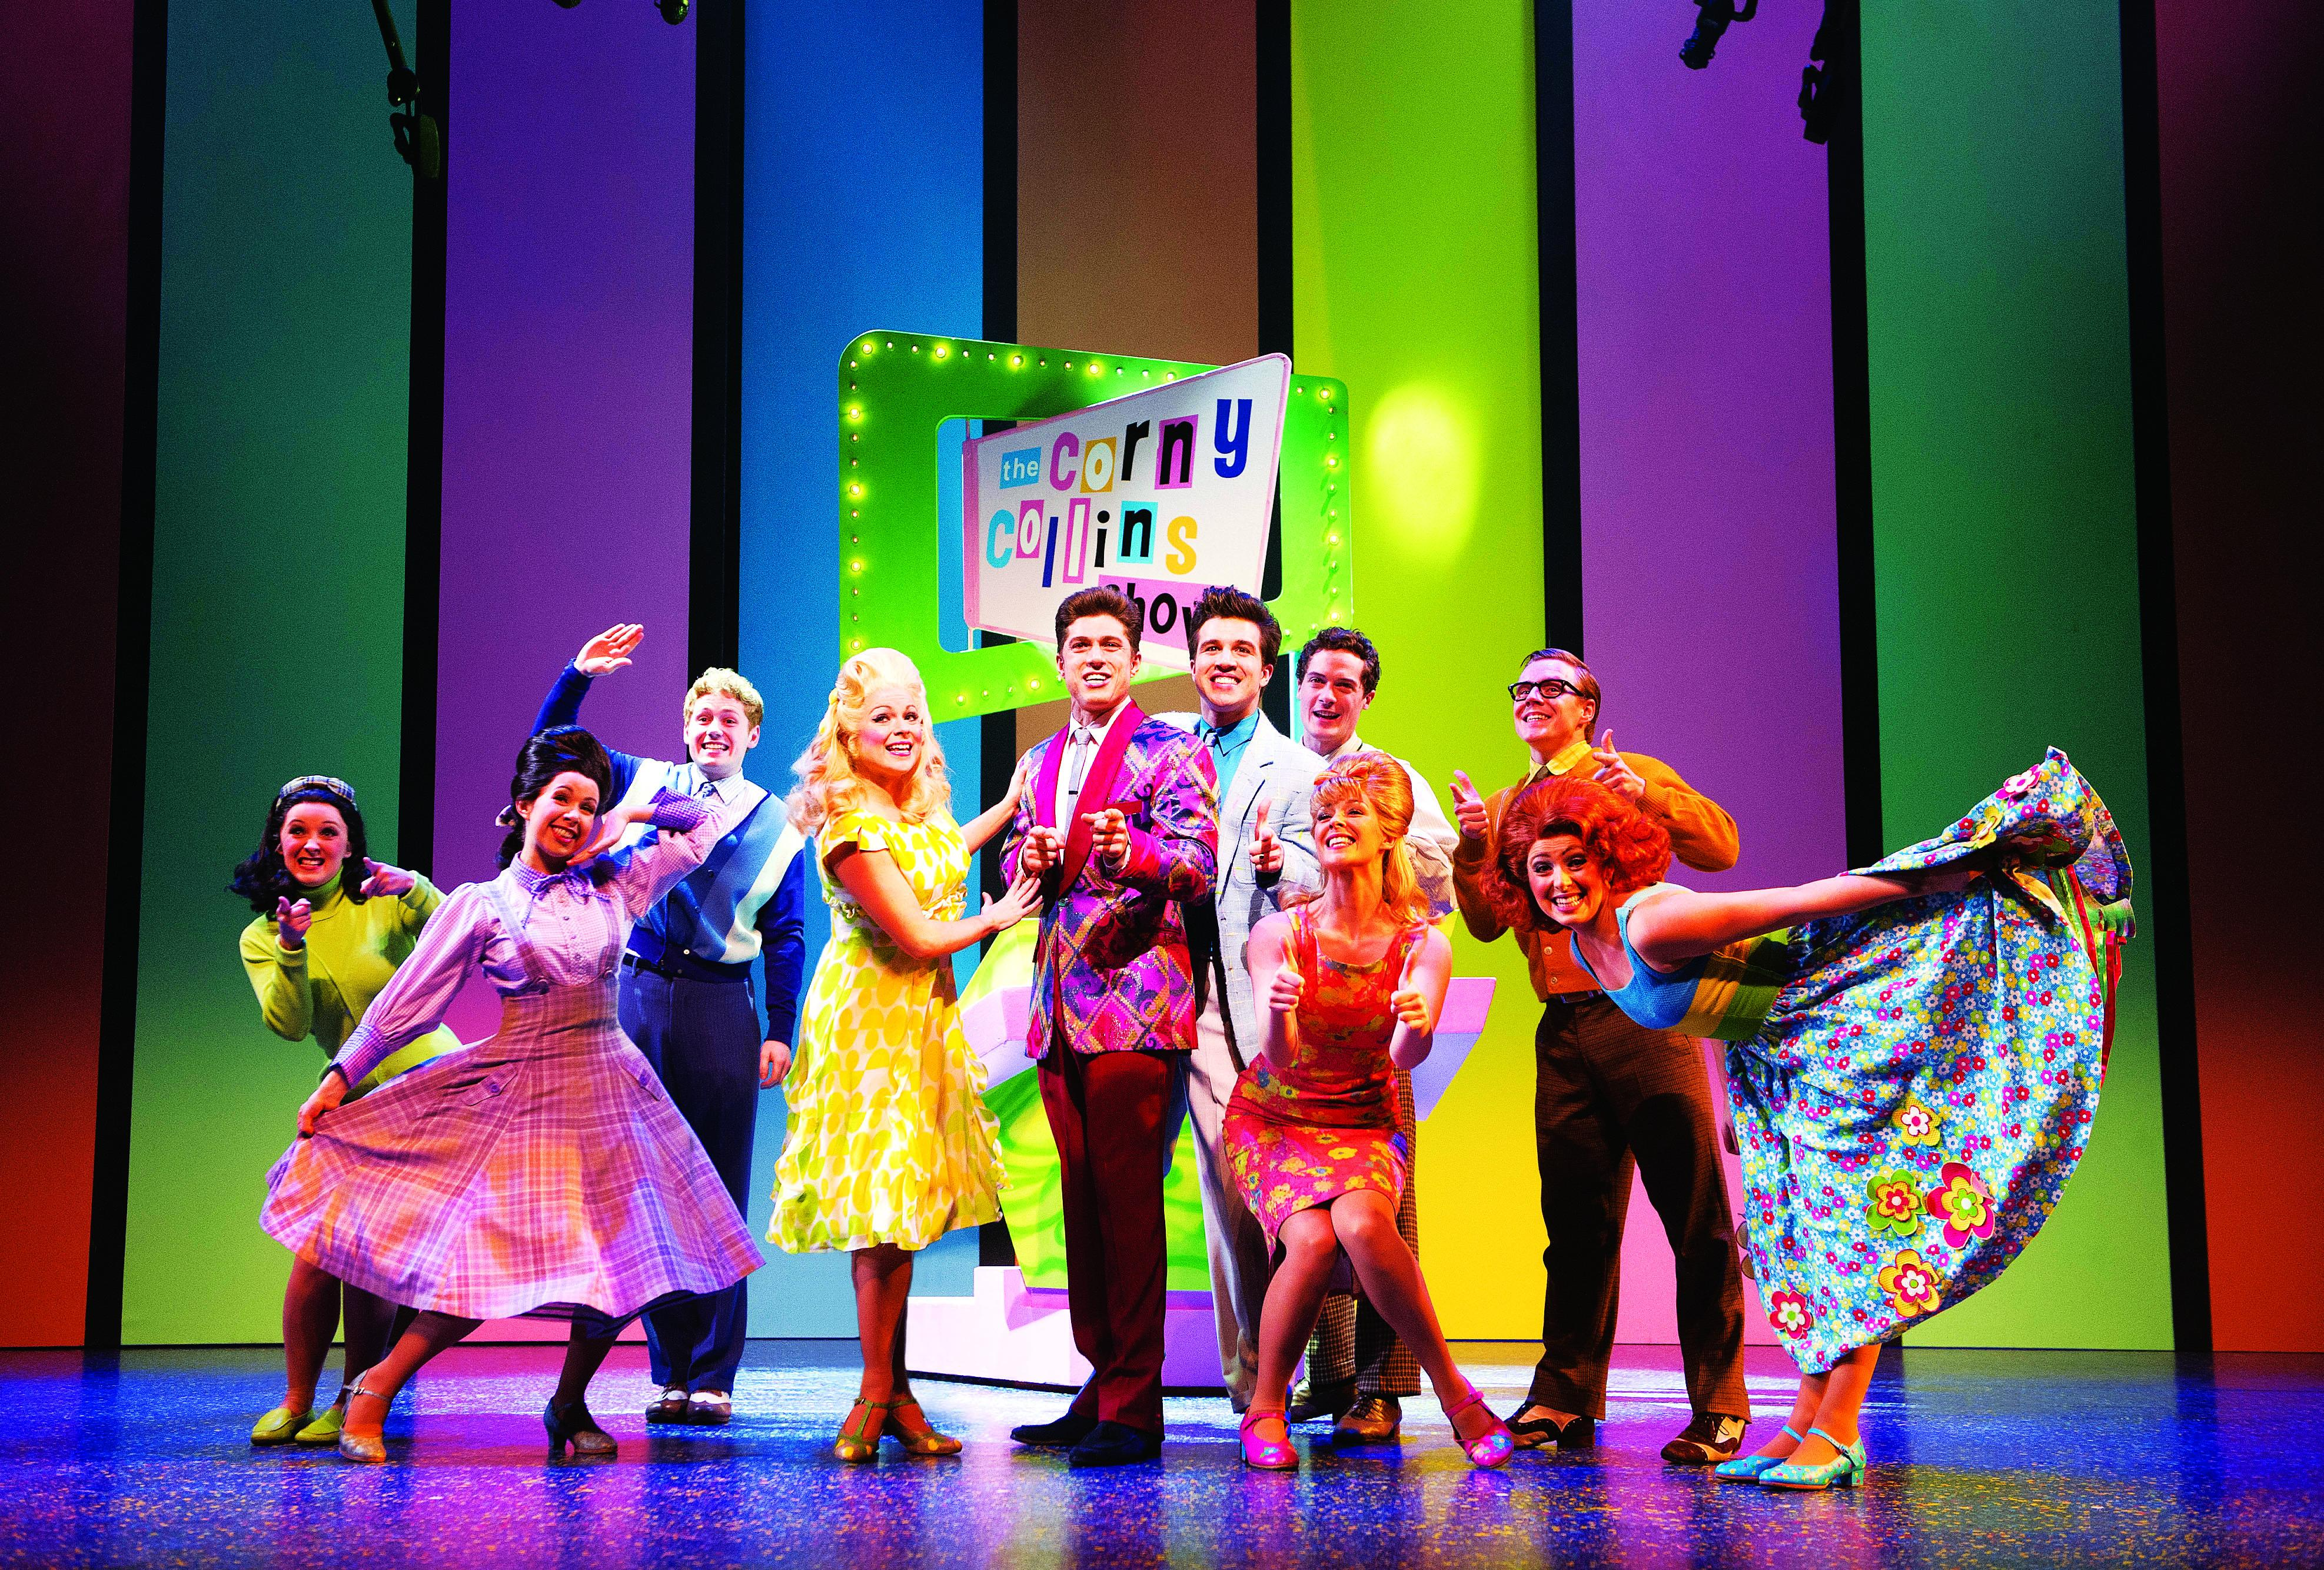 Hairspray the musical. 'The Corny Collins Show'.